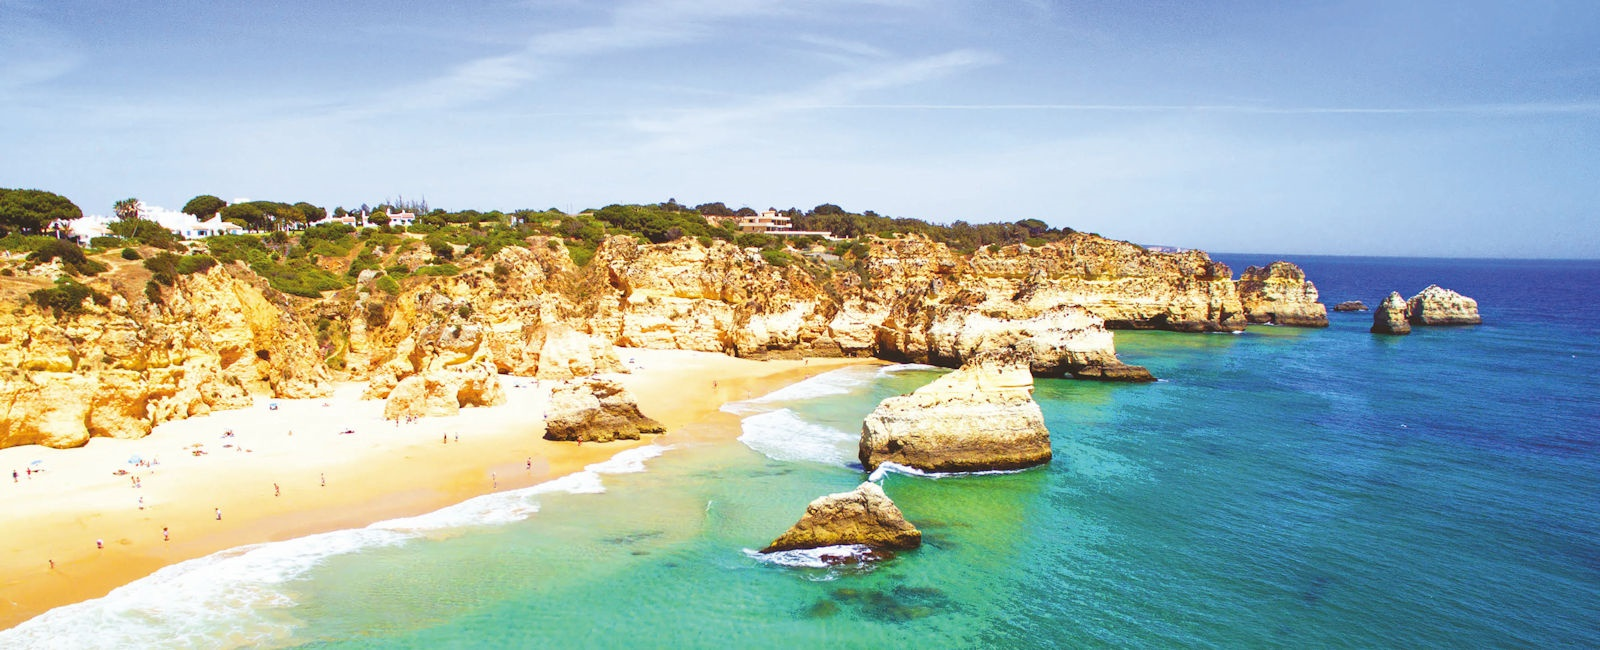 Luxury Alvor Holidays